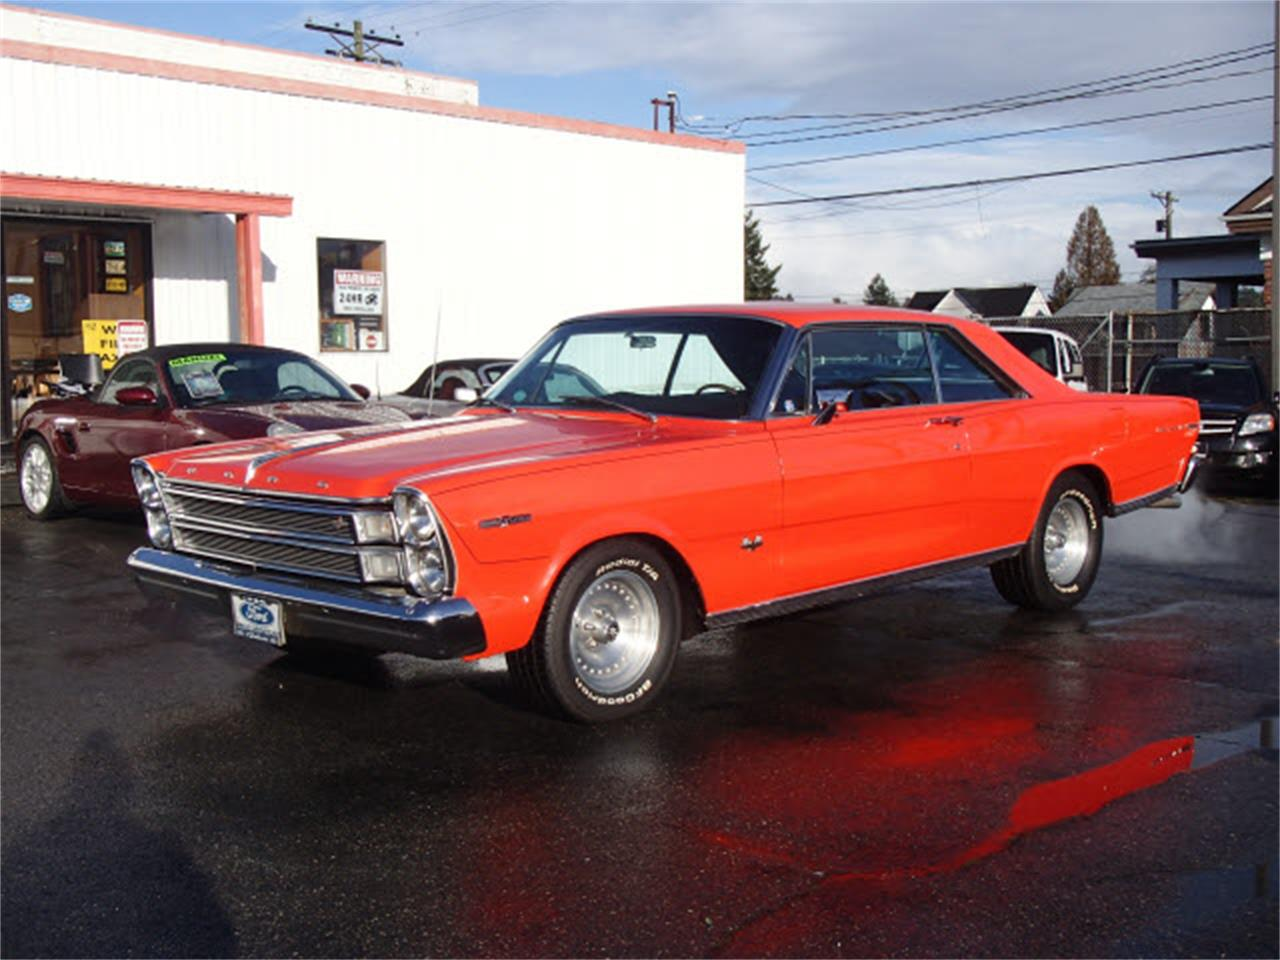 Large Picture of 1966 Galaxie 500 located in Tacoma Washington - $21,990.00 - MO6V